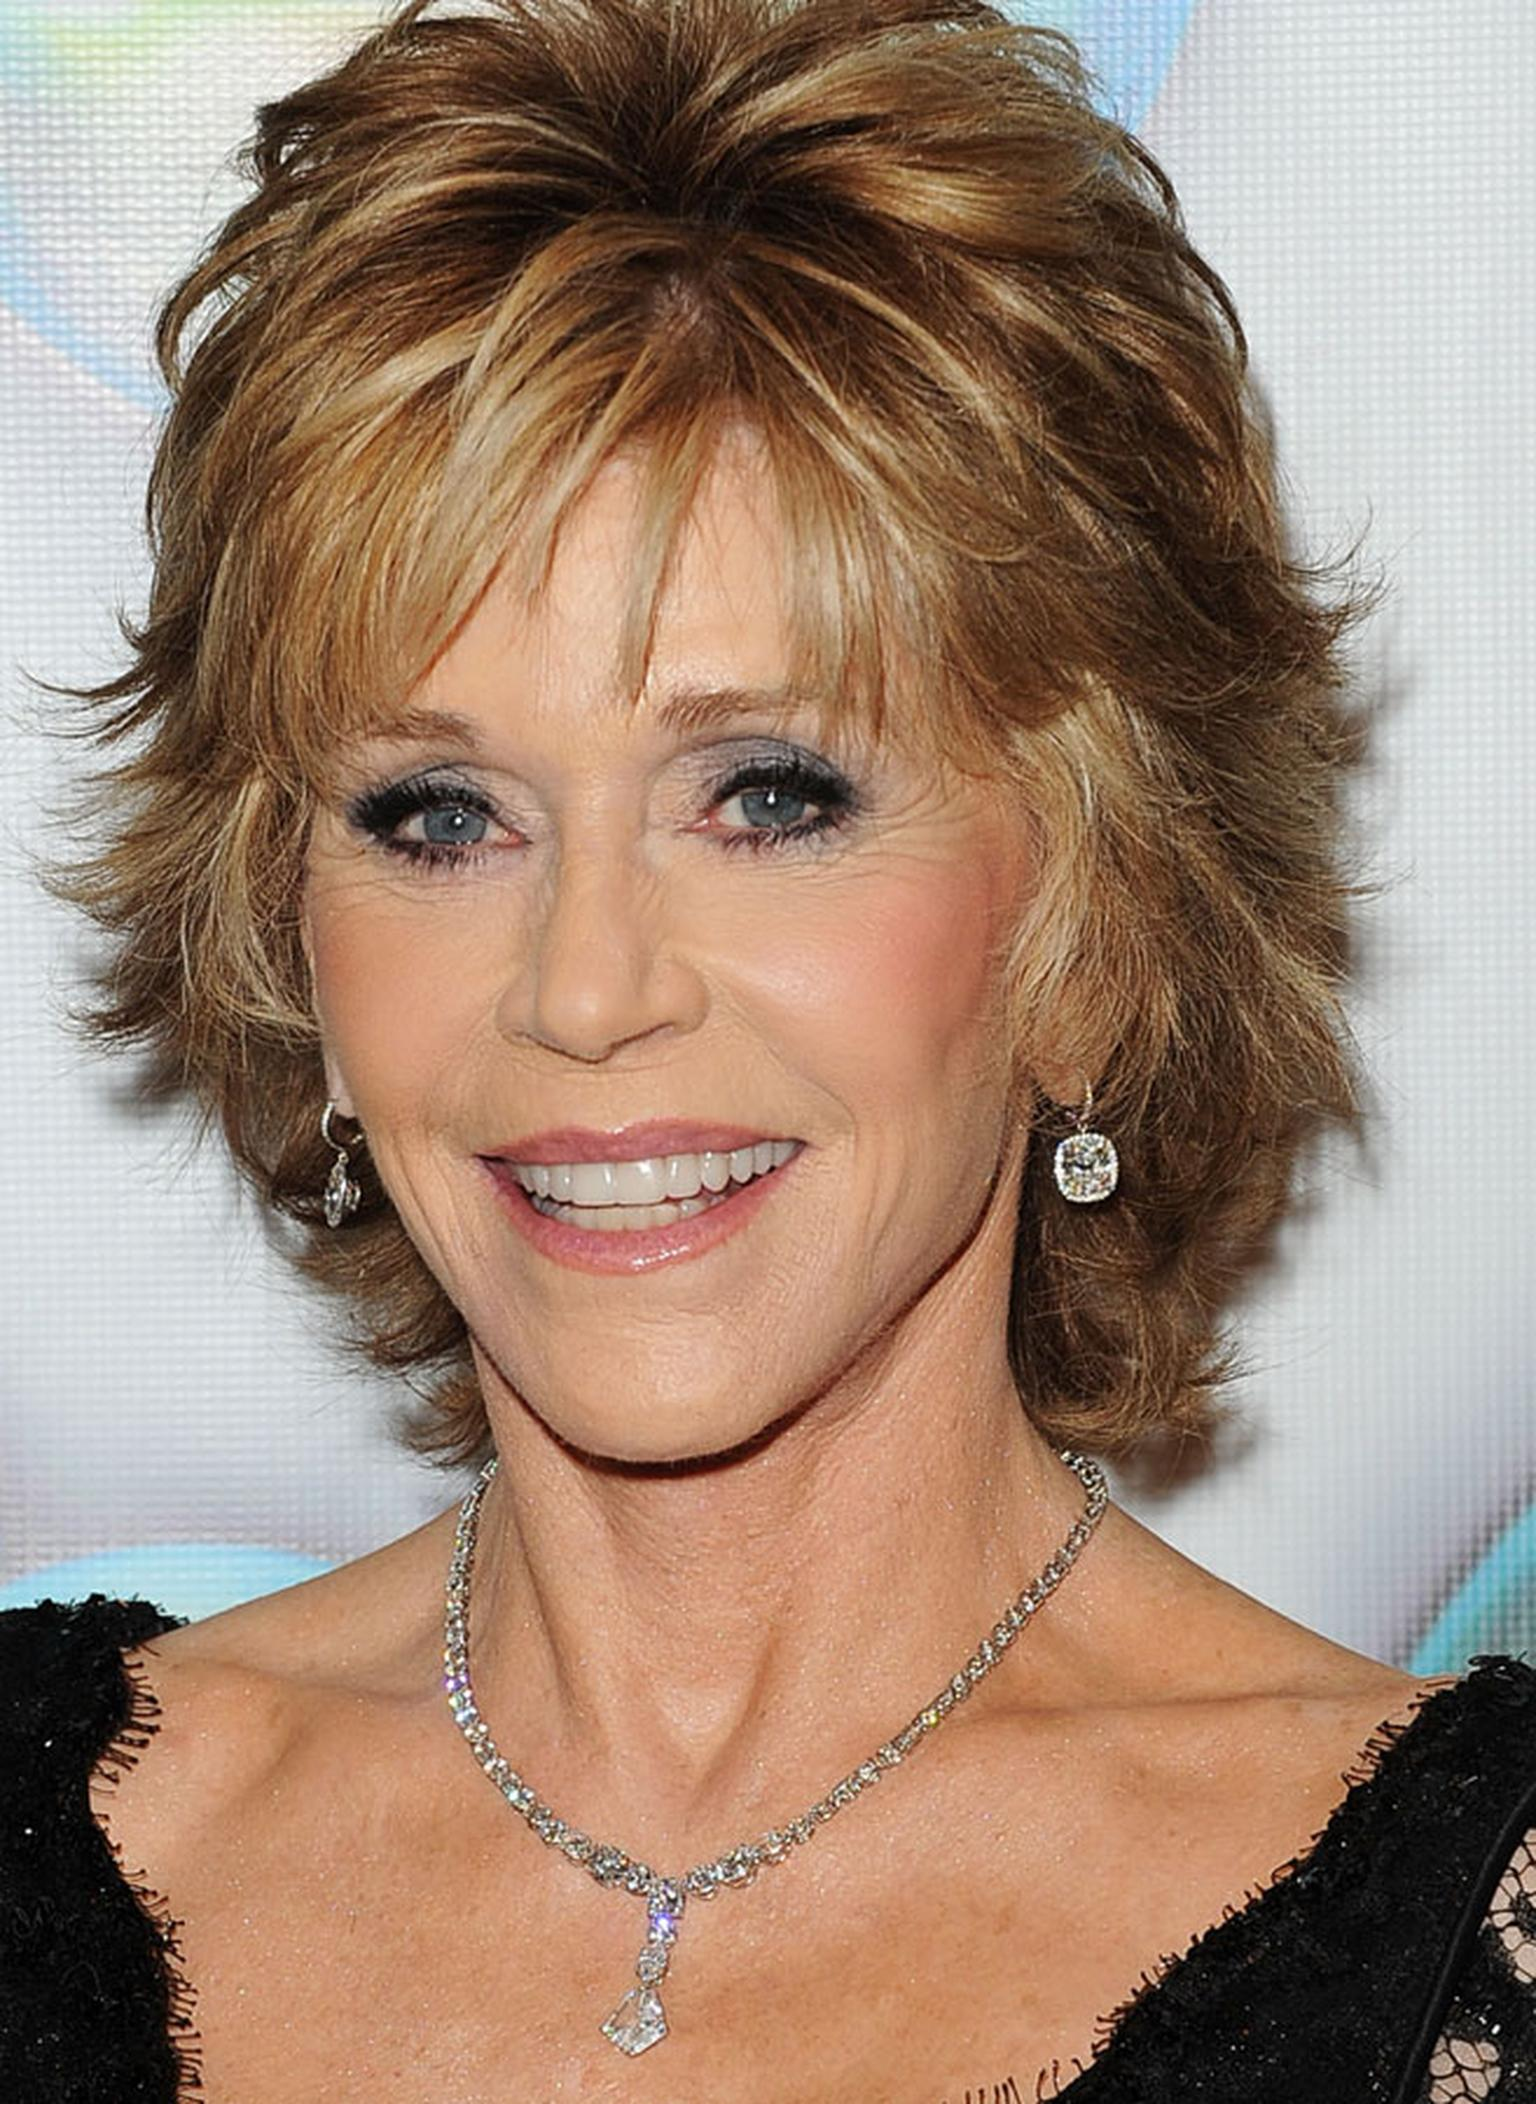 short shaggy haircuts for older women fonda the jewellery editor 5864 | jane fonda wearing chopard at the 69th annual golden globe awards l.a.jpg 1536x0 q75 crop scale subsampling 2 upscale false